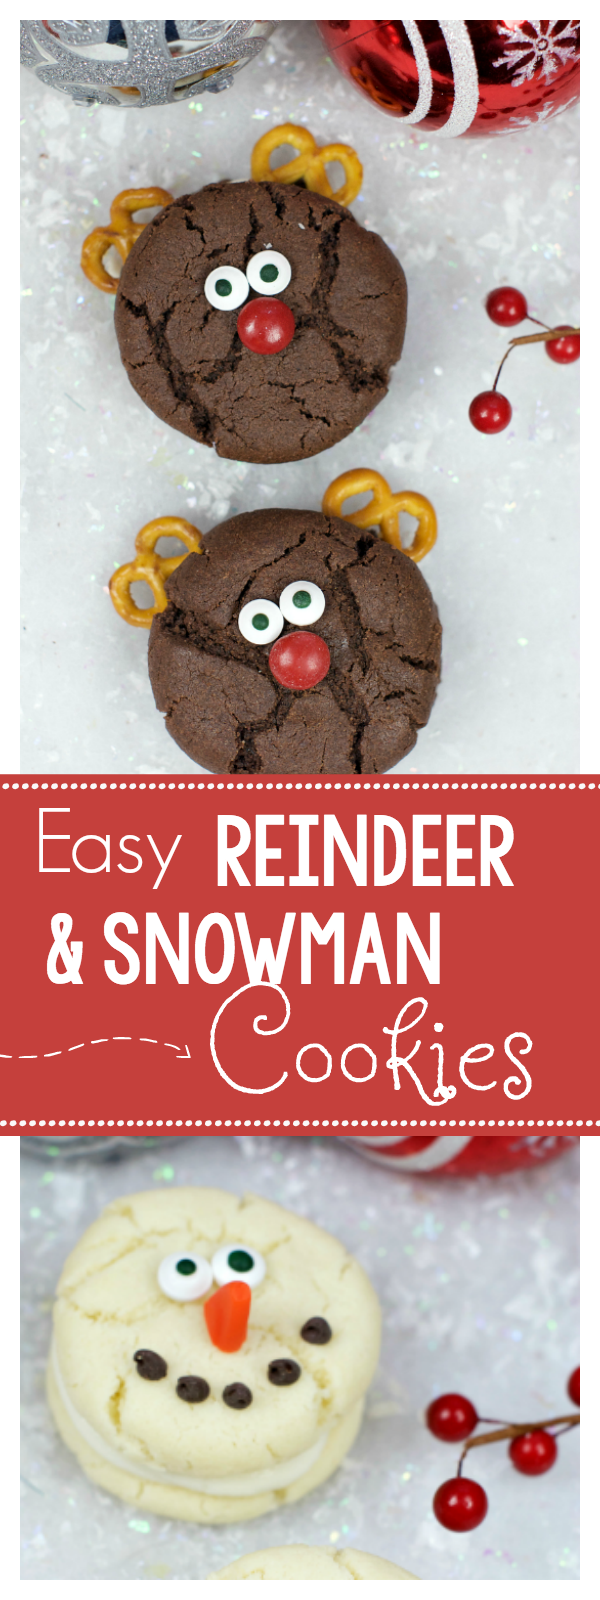 Easy Reindeer Cookies and Snowman Cookies for Christmas